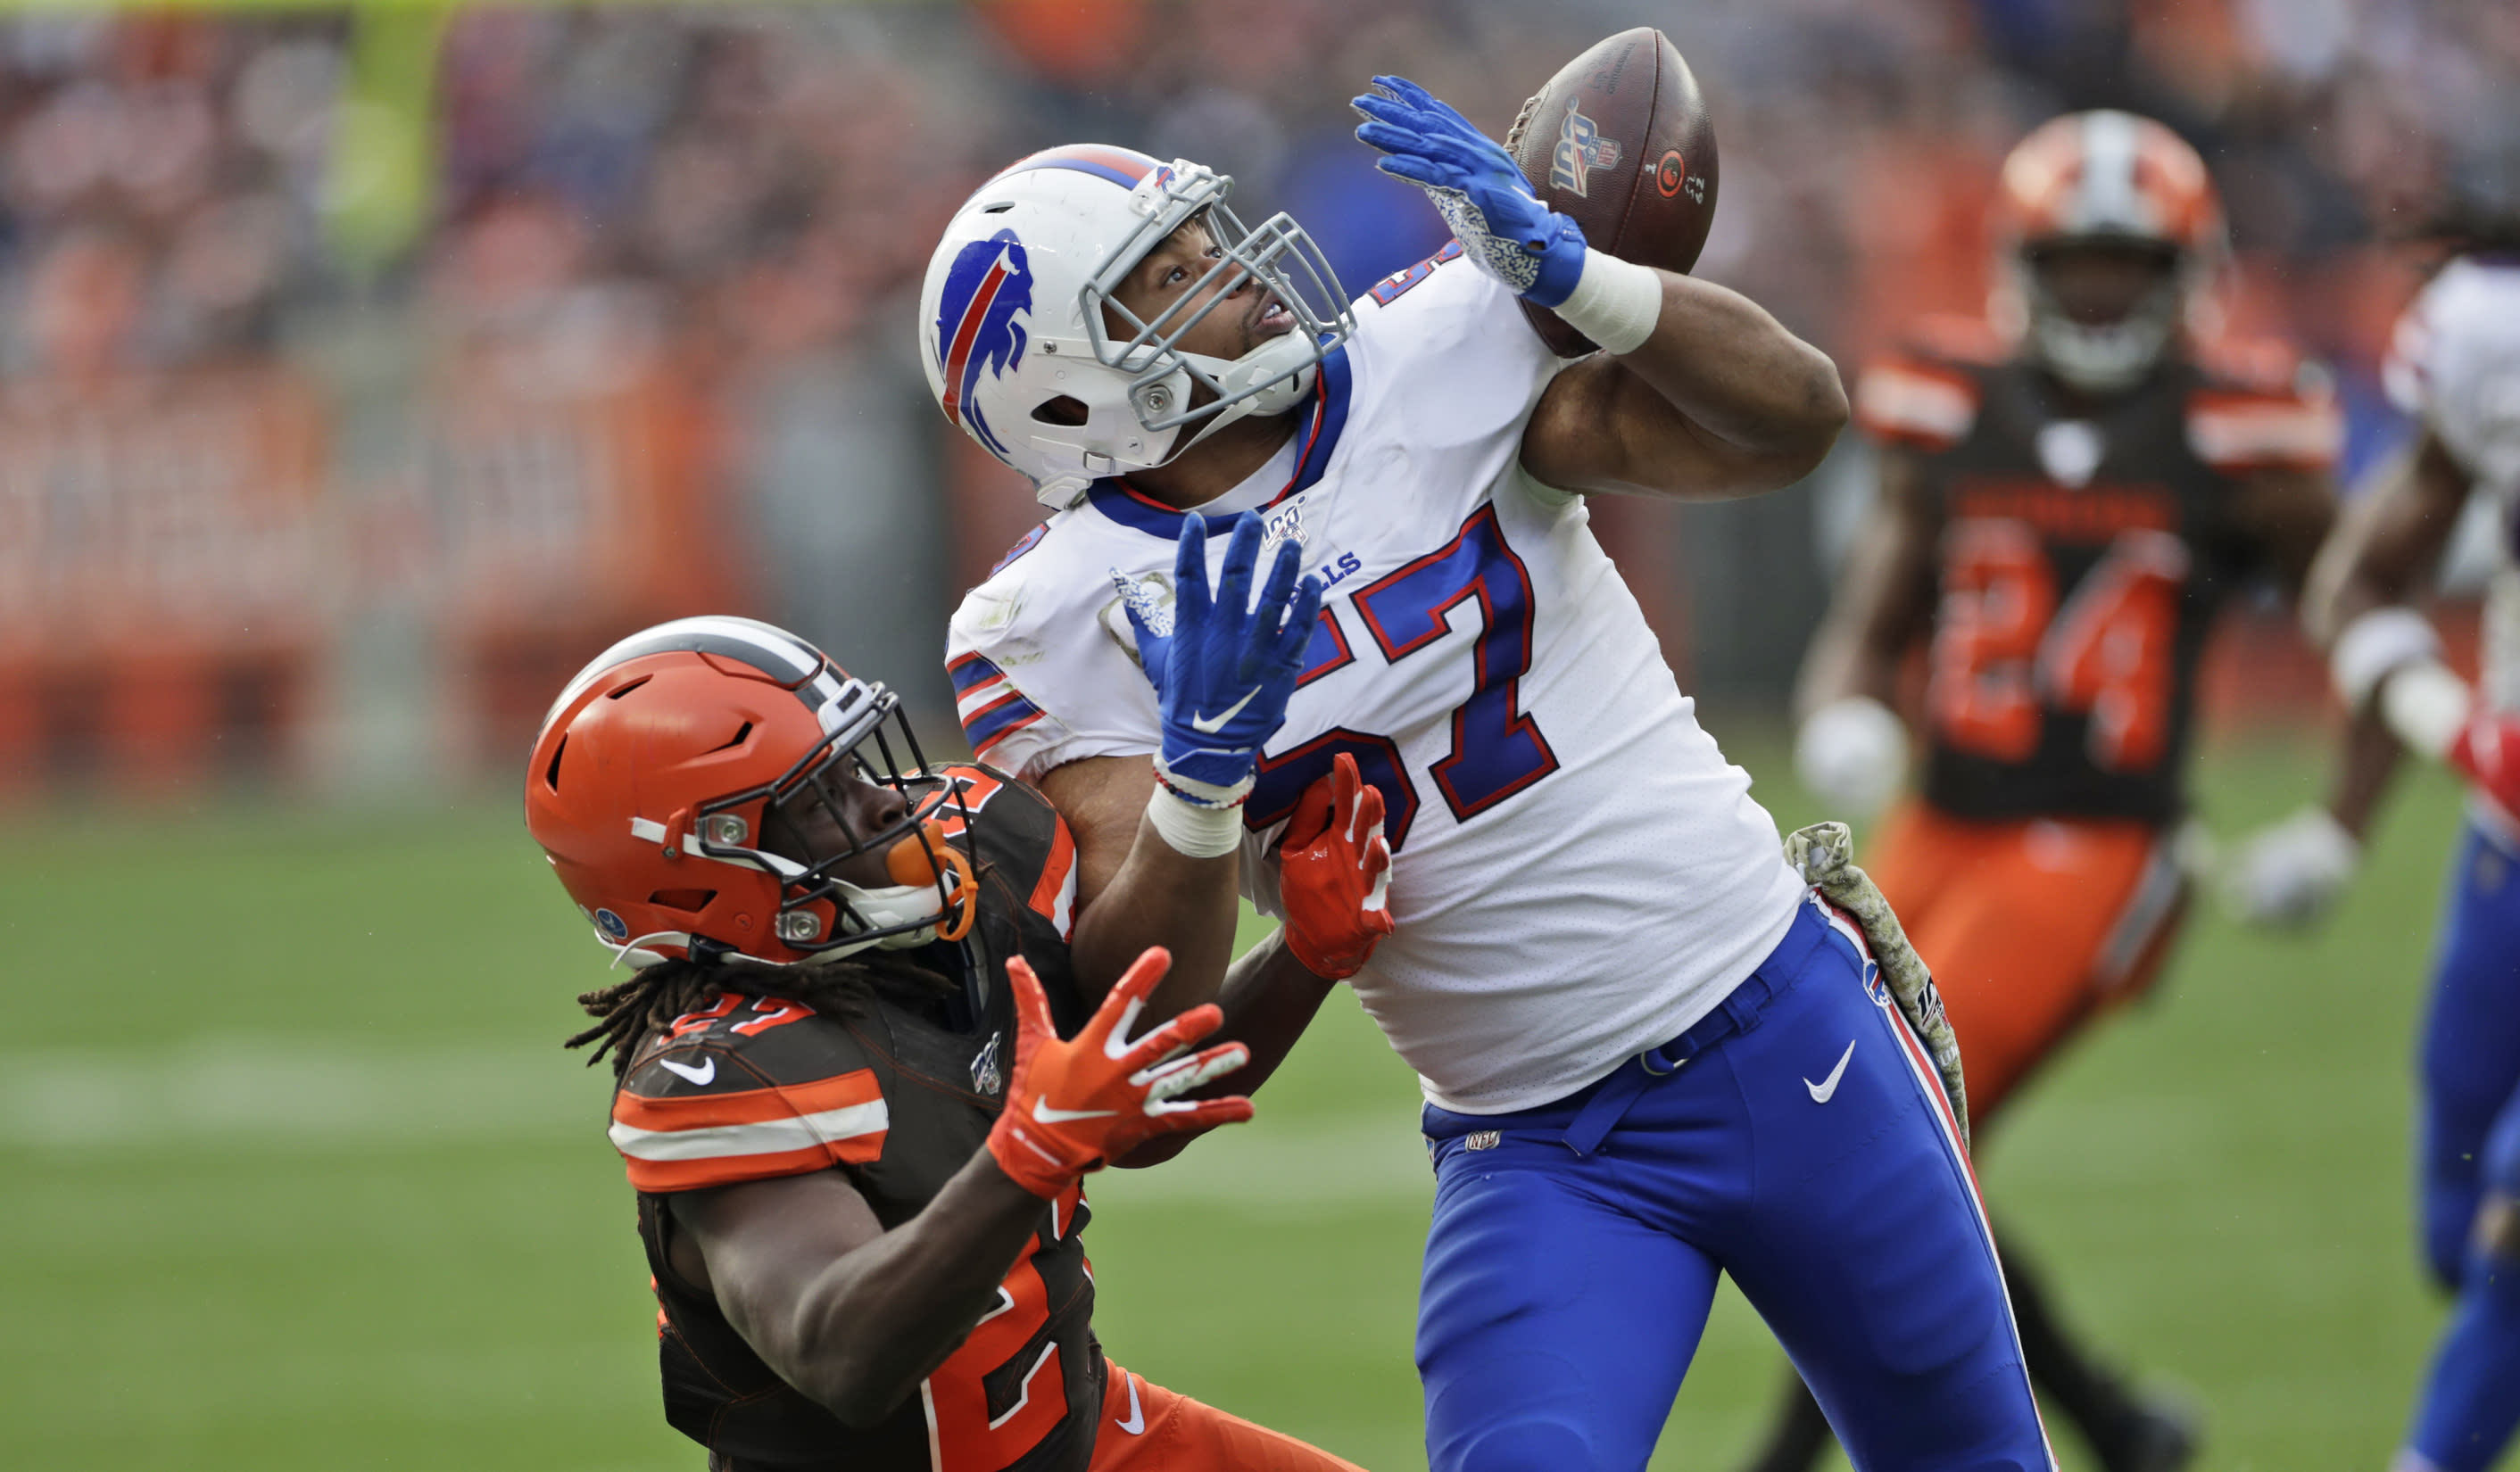 Buffalo Bills outside linebacker Lorenzo Alexander (57) breaks up a pass intended for Cleveland Browns running back Kareem Hunt (27) during the second half of an NFL football game, Sunday, Nov. 10, 2019, in Cleveland. (AP Photo/Ron Schwane)